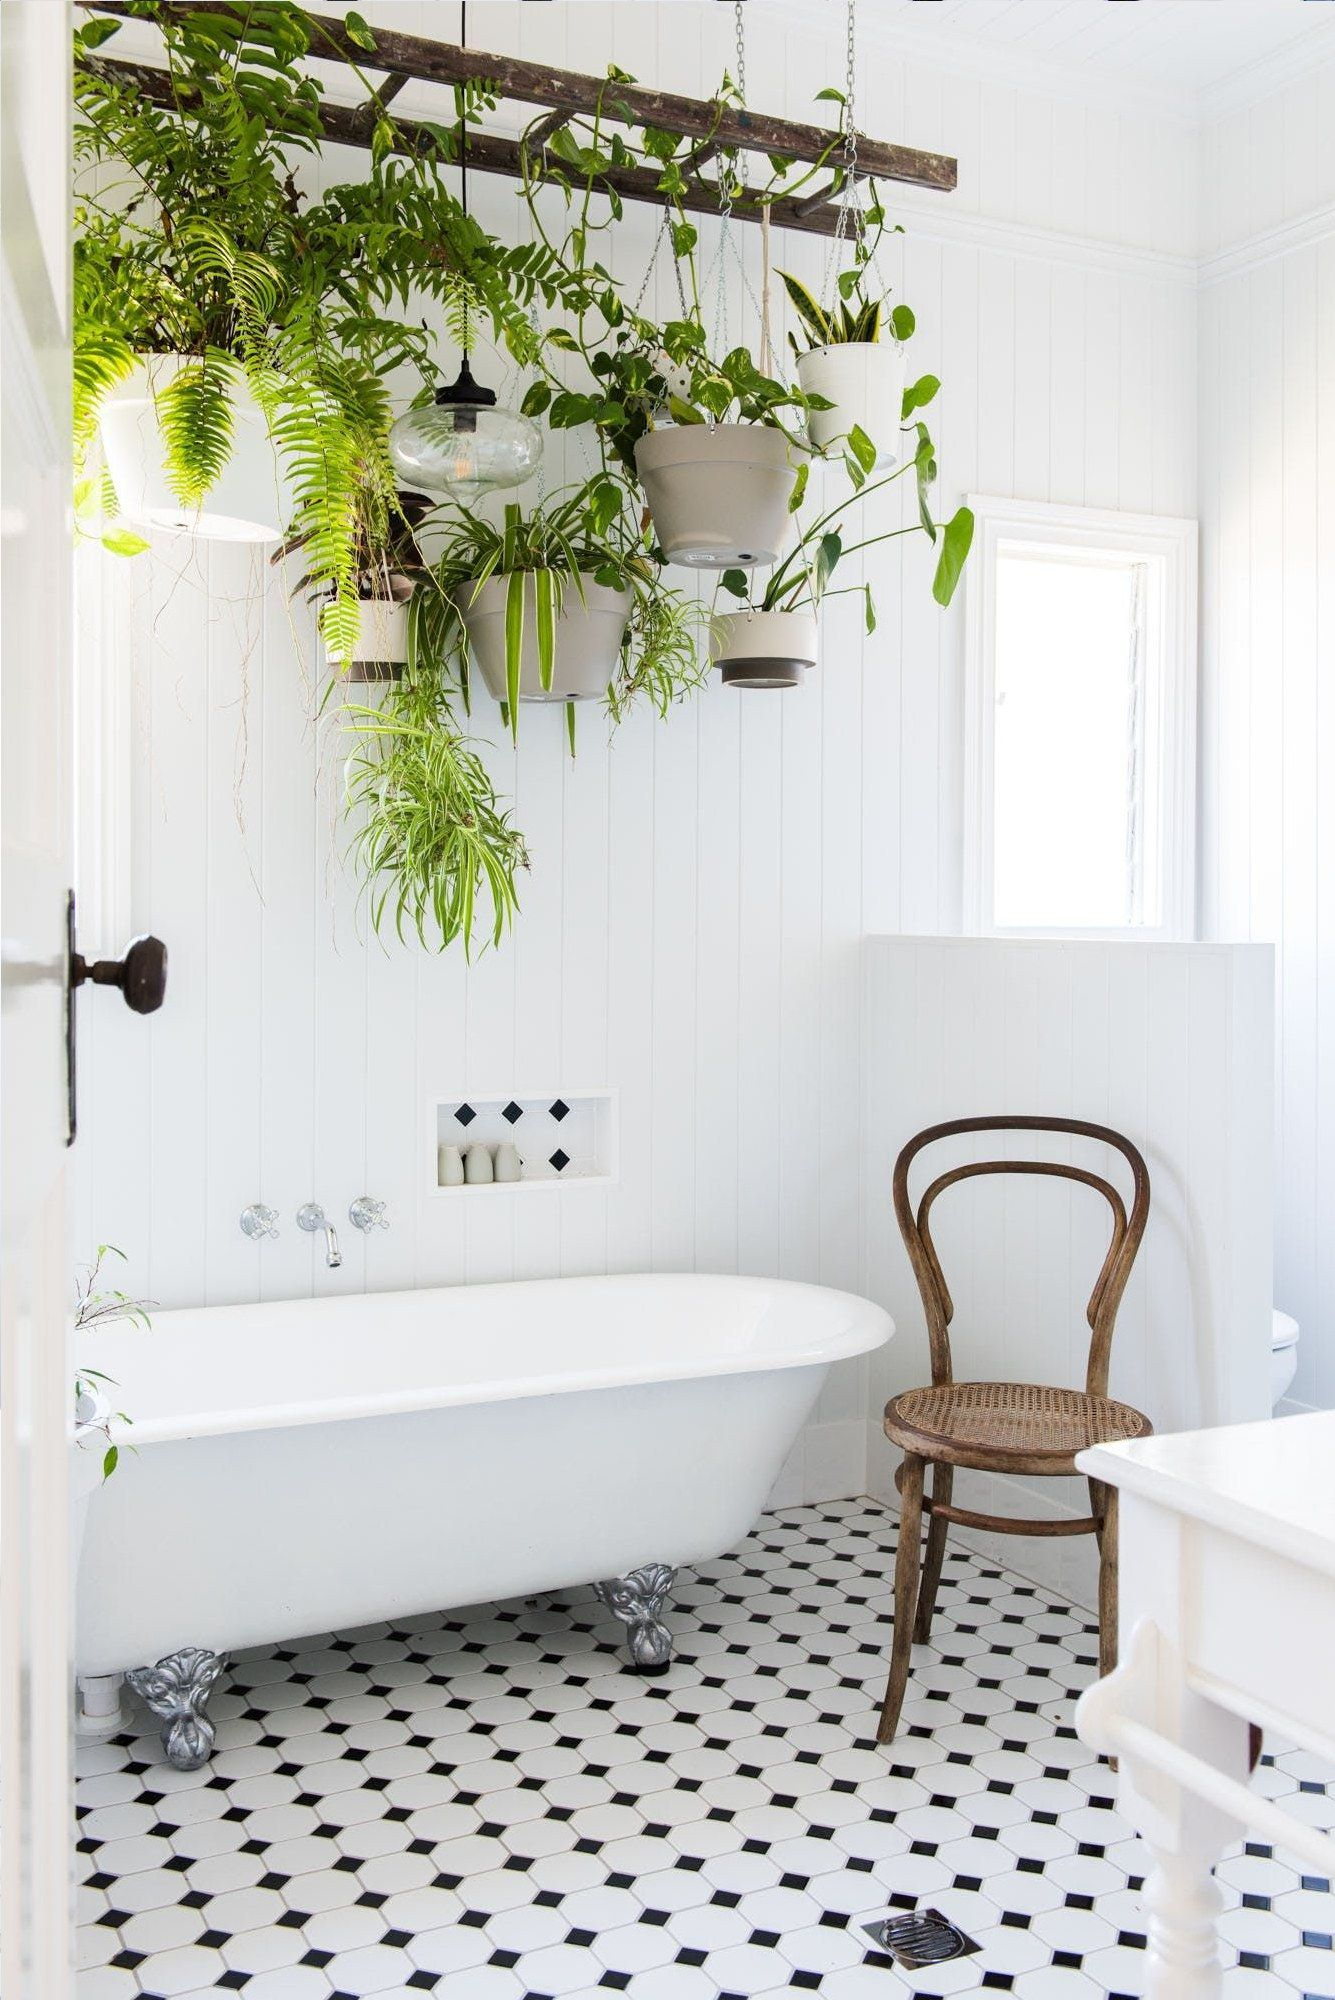 Bathroom Decor Create A Splash With Your Bathroom Look By